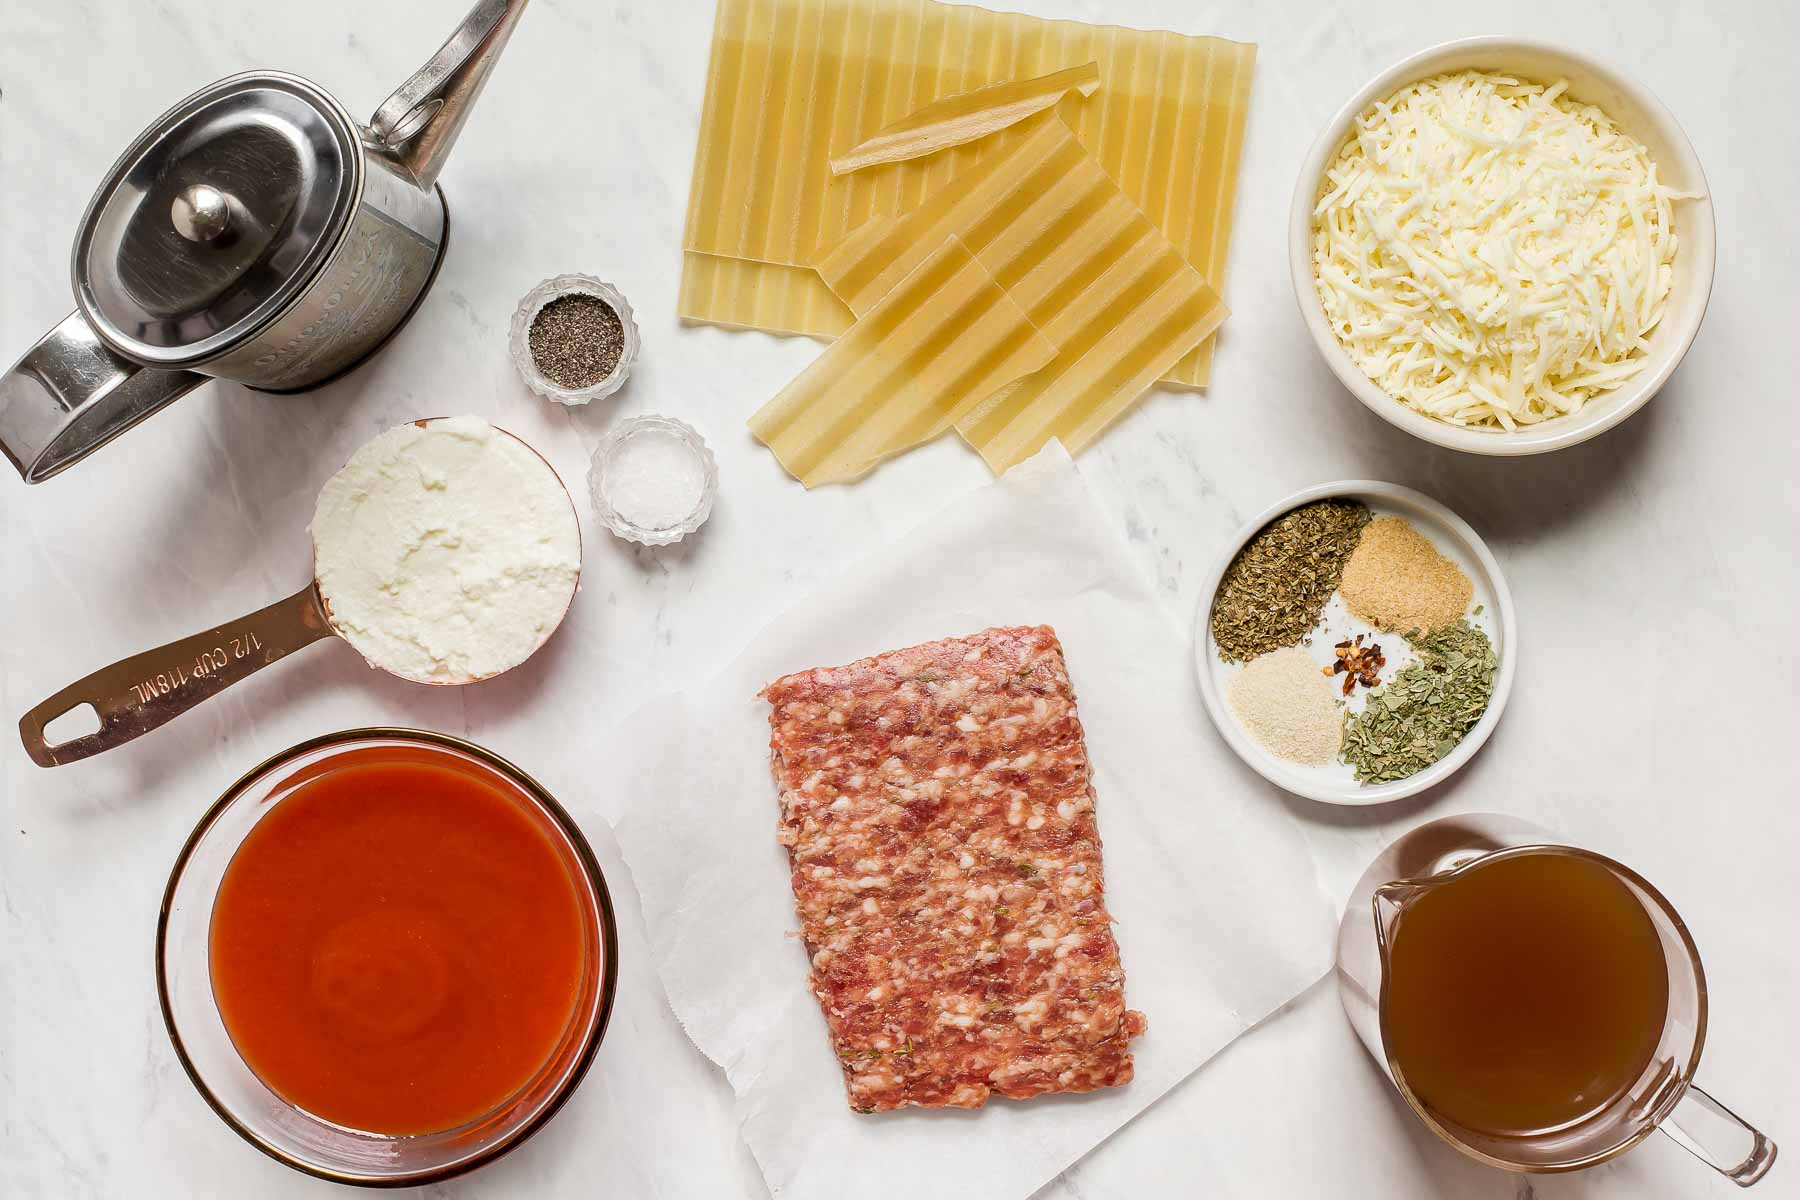 Ingredients for skillet lasagna on white table.